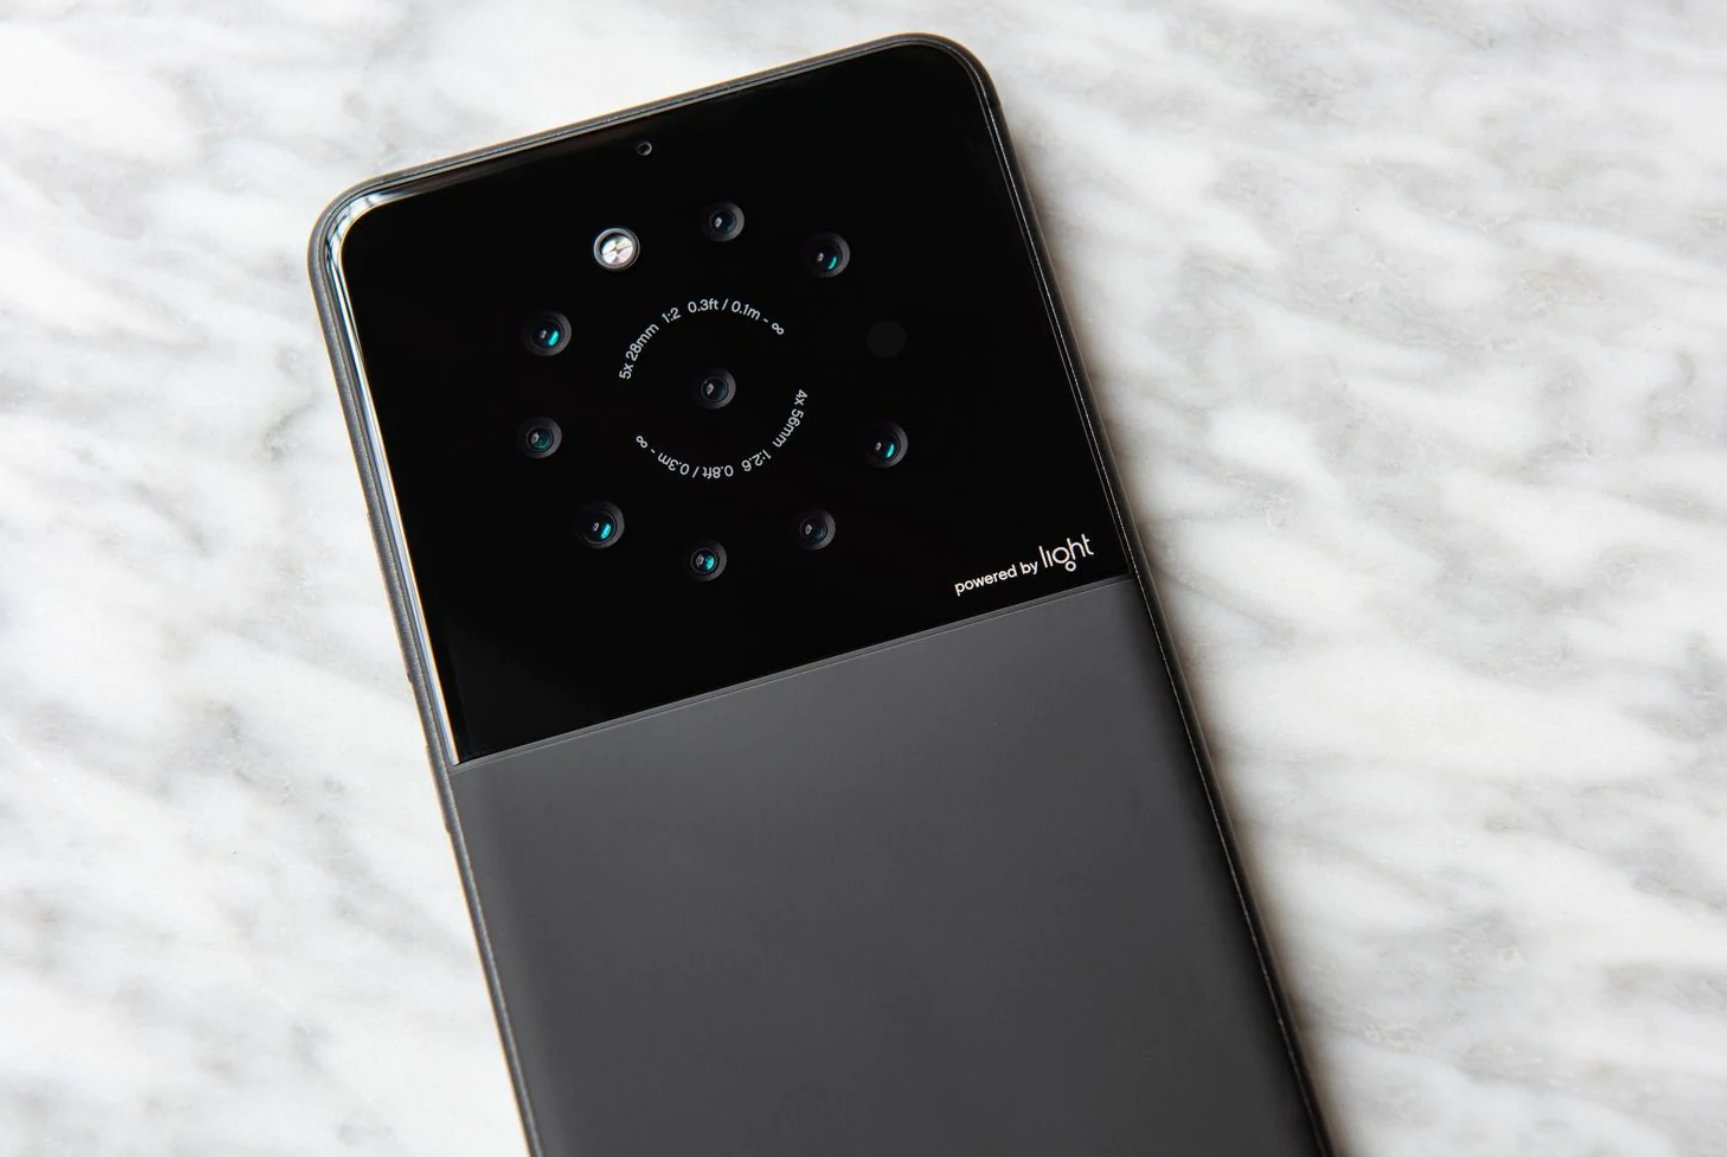 Did An Interesting Post About The Future Products Of Light Co Company That Was Responsible For Making The Light 16 Multi Aperture Computational Camera